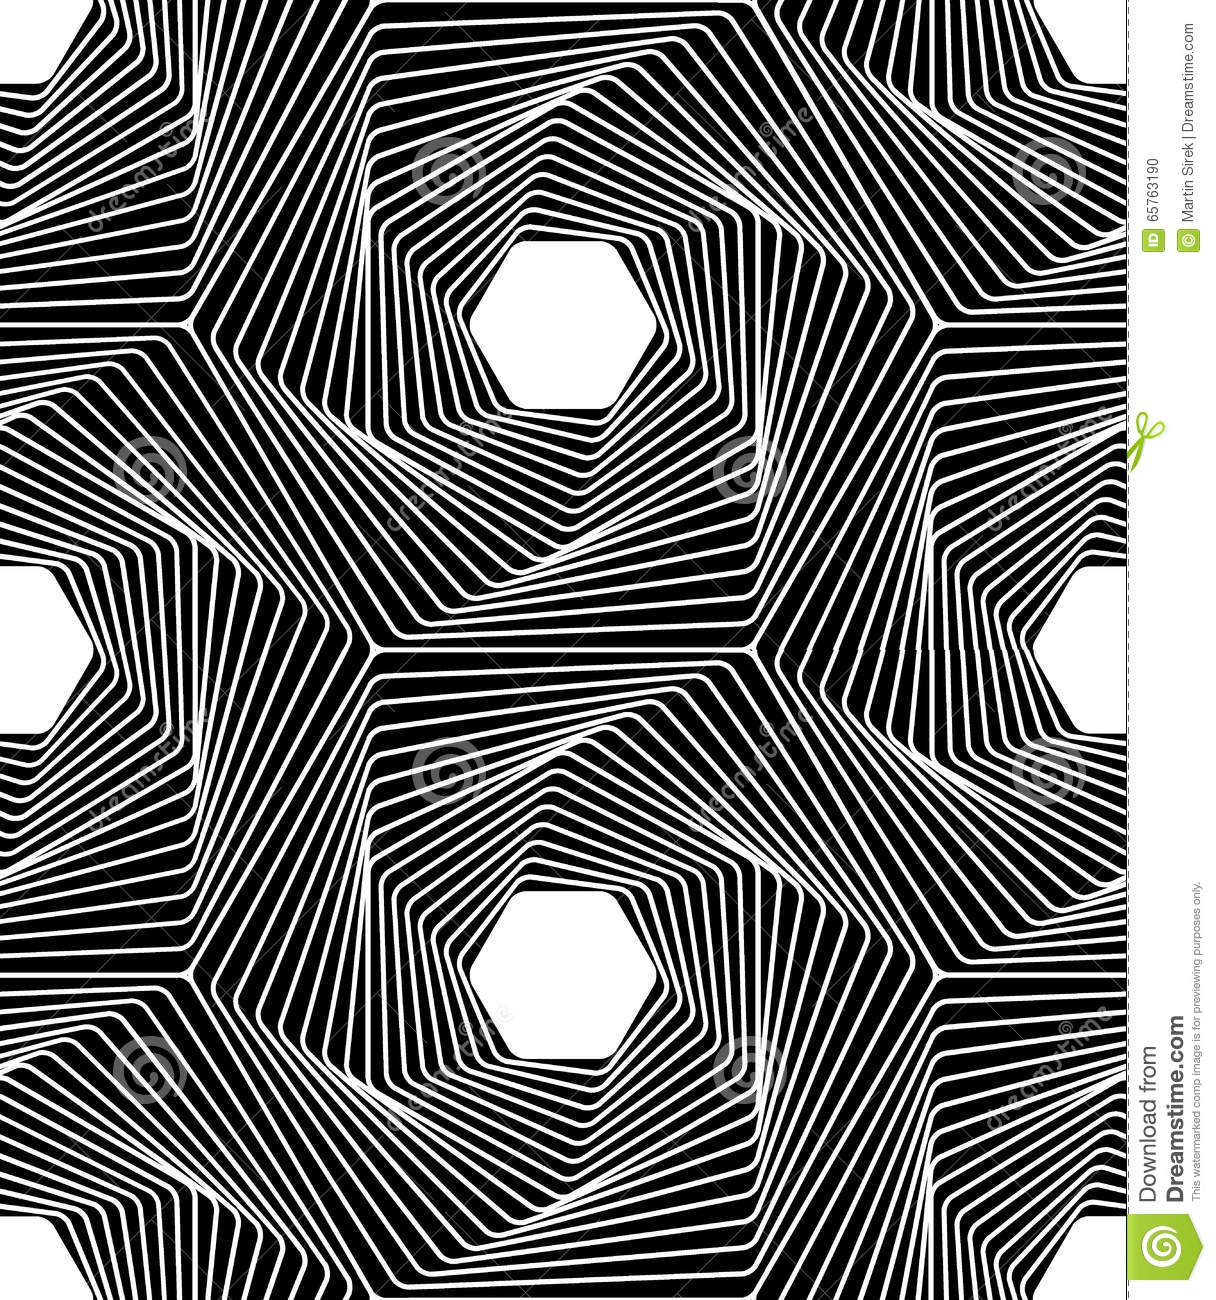 Line Art Poster Design : Vector modern seamless geometry pattern line art black